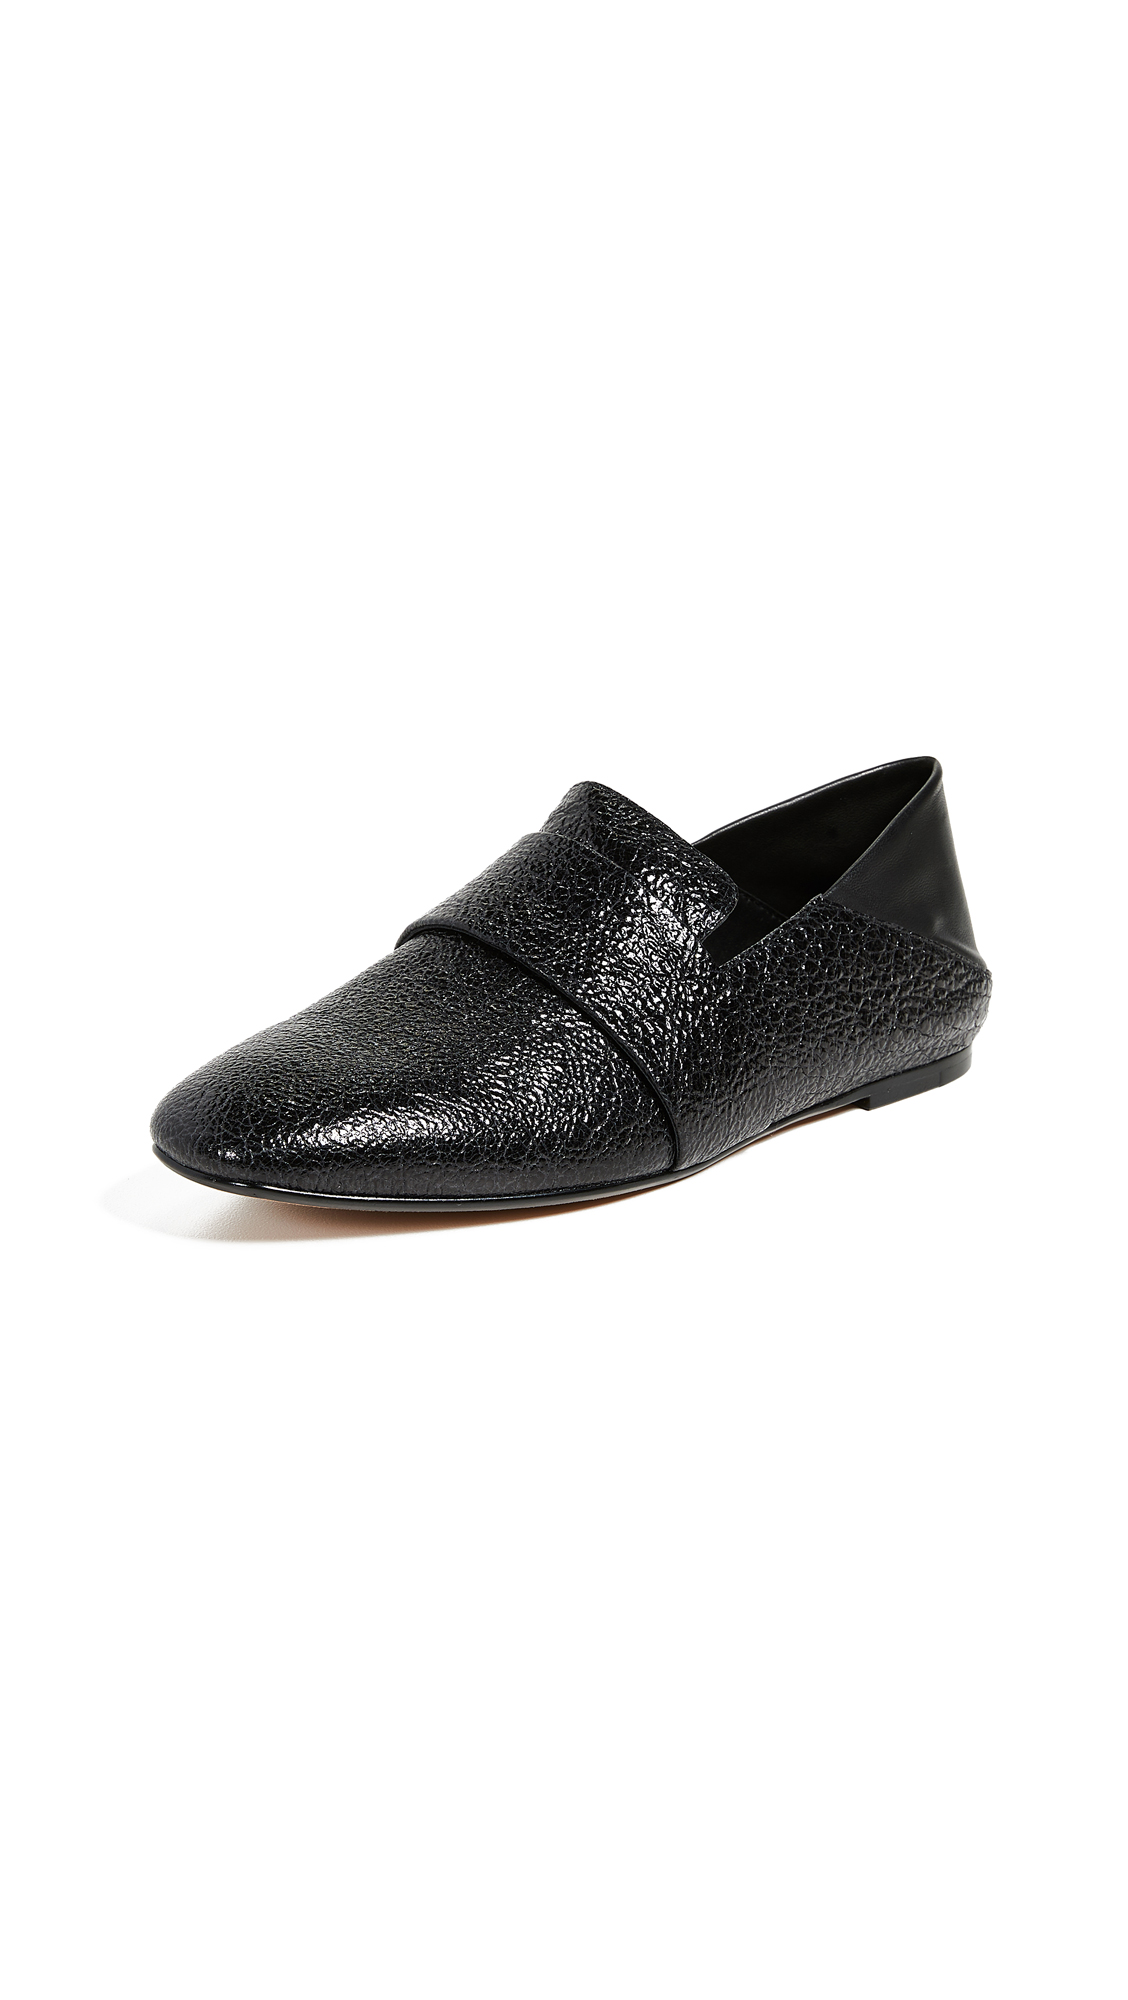 Vince Harris Loafers - Black